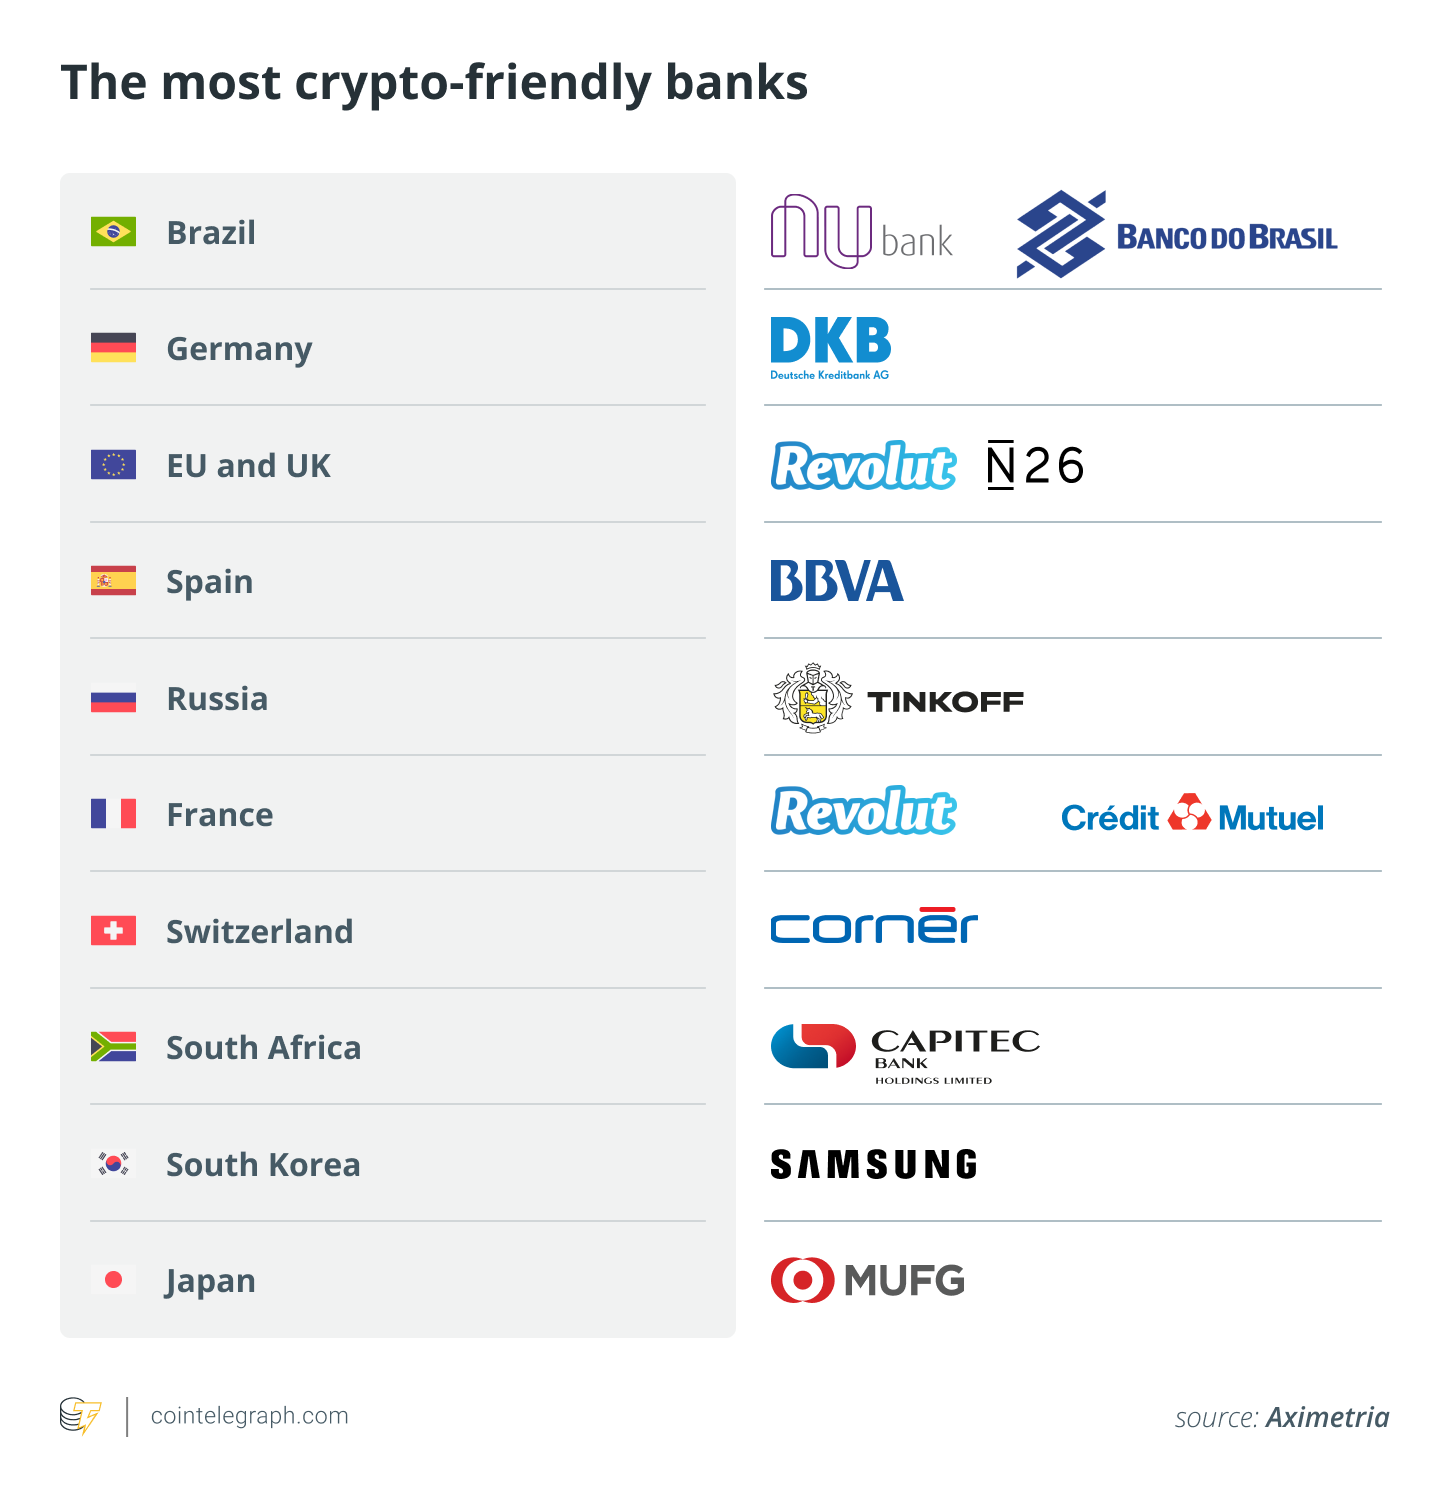 The most crypto-friendly banks